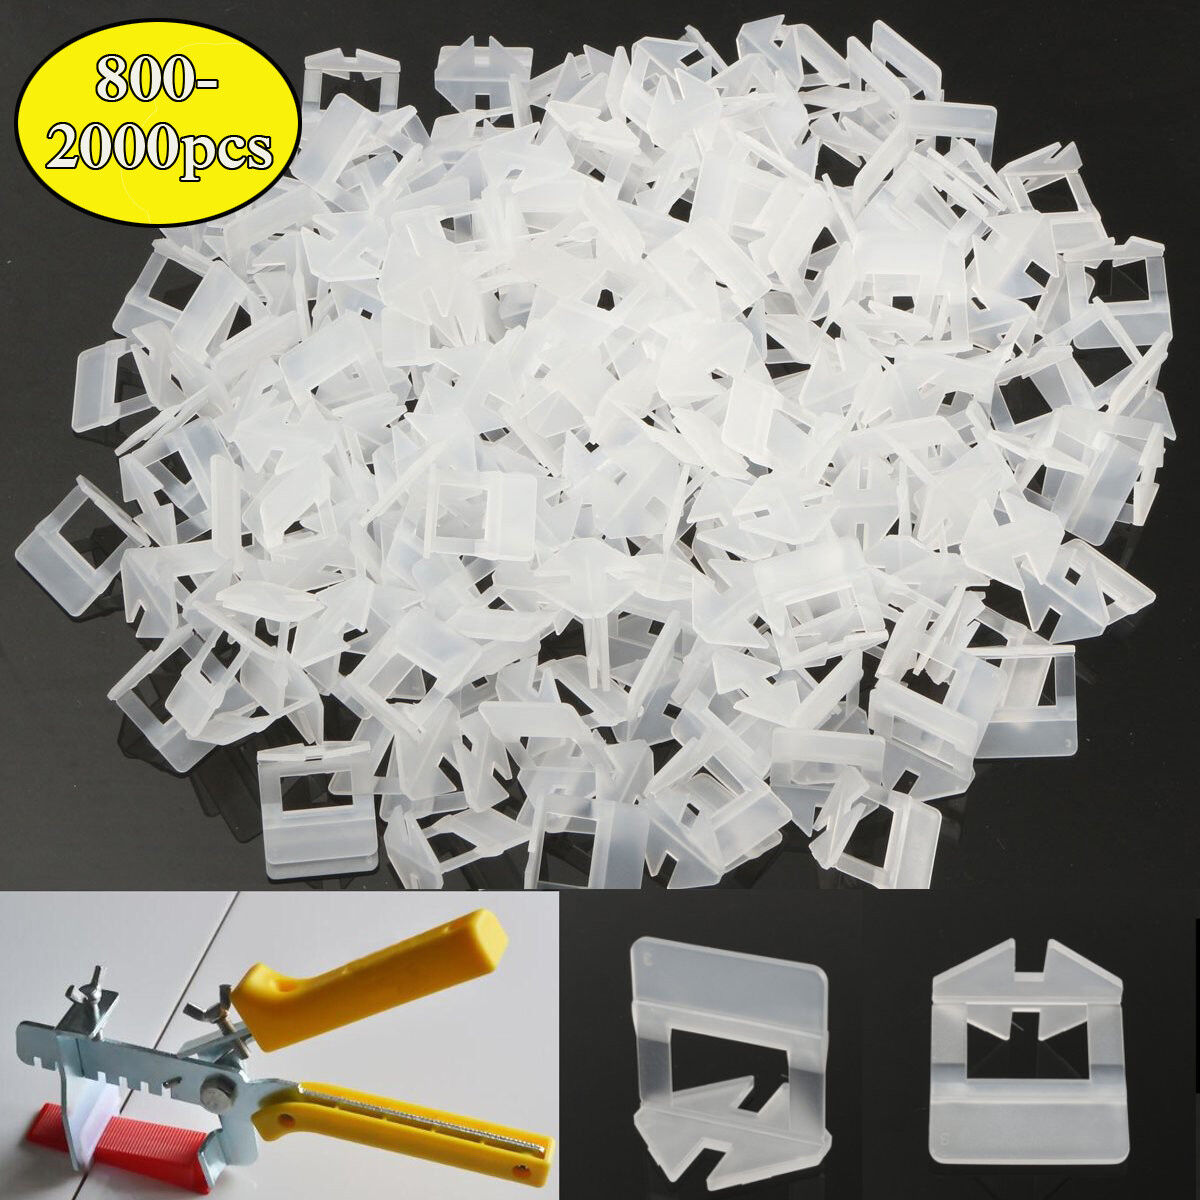 400PCS 2mm Tile Leveling Spacer Wall Flooring Levelling